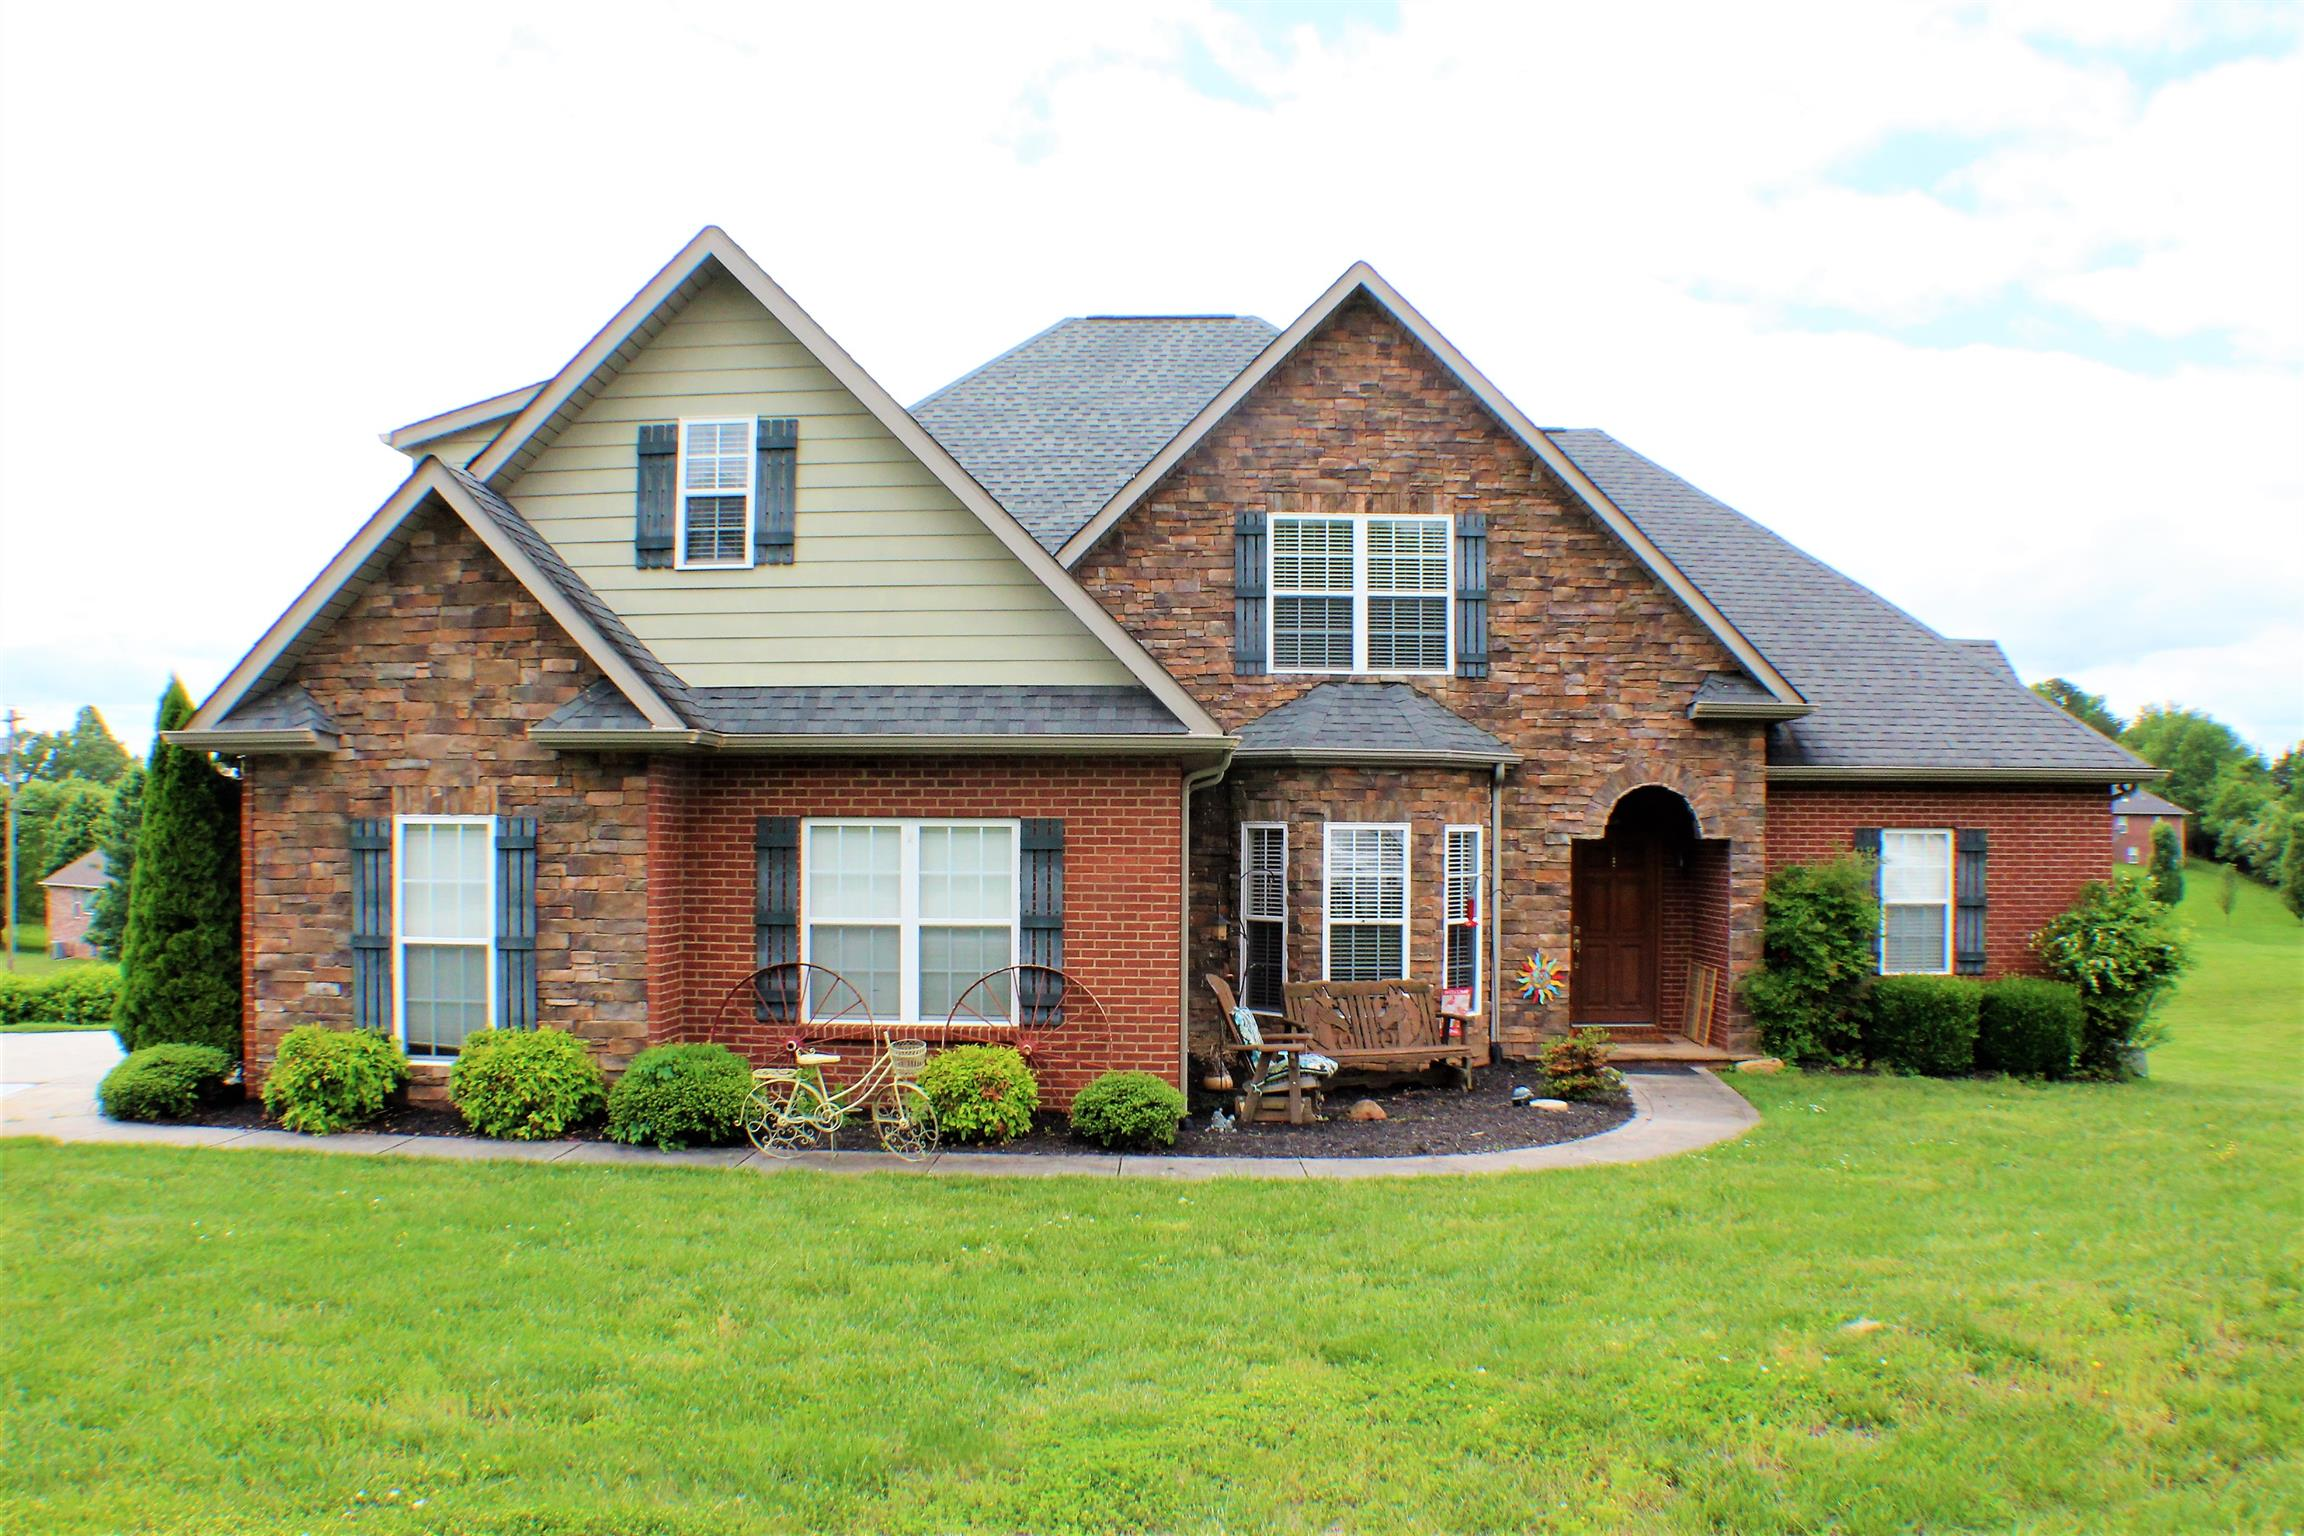 4813 River Bend Ct, Cookeville, TN 38506 - Cookeville, TN real estate listing